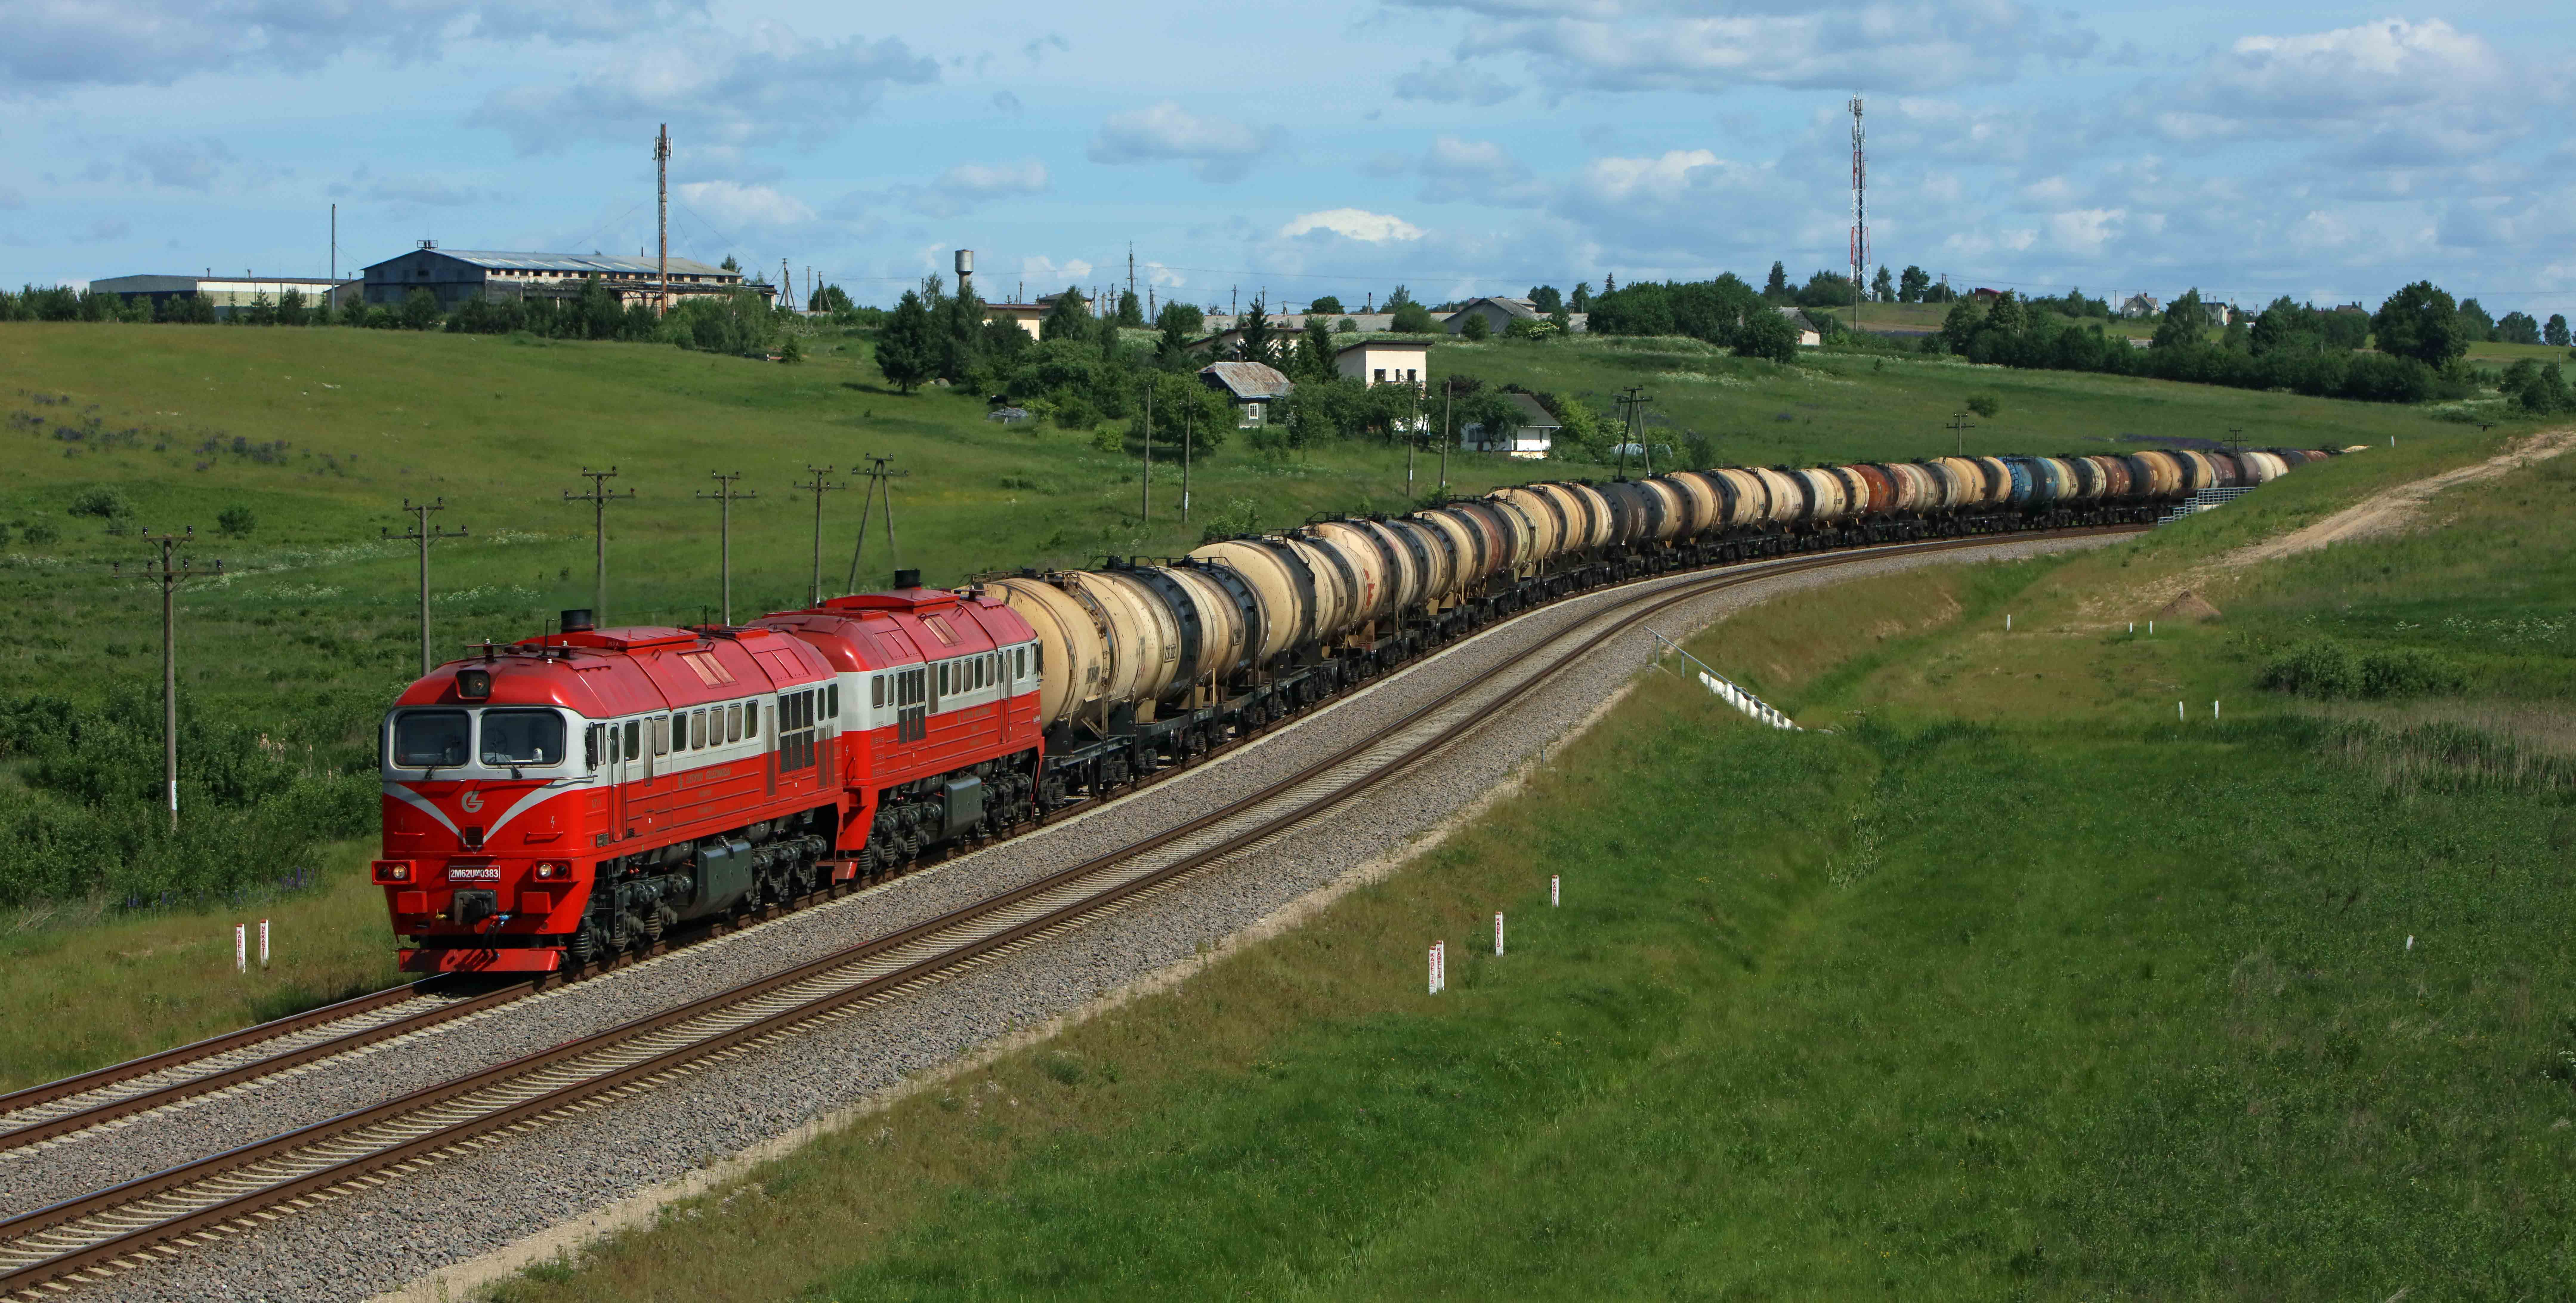 LG 2M62M-0383 negotiates the S-curve at Pakalniskes (Lithuania) with an oil train from Belarusia via Kena to Vaidotai on 5 June 2016.